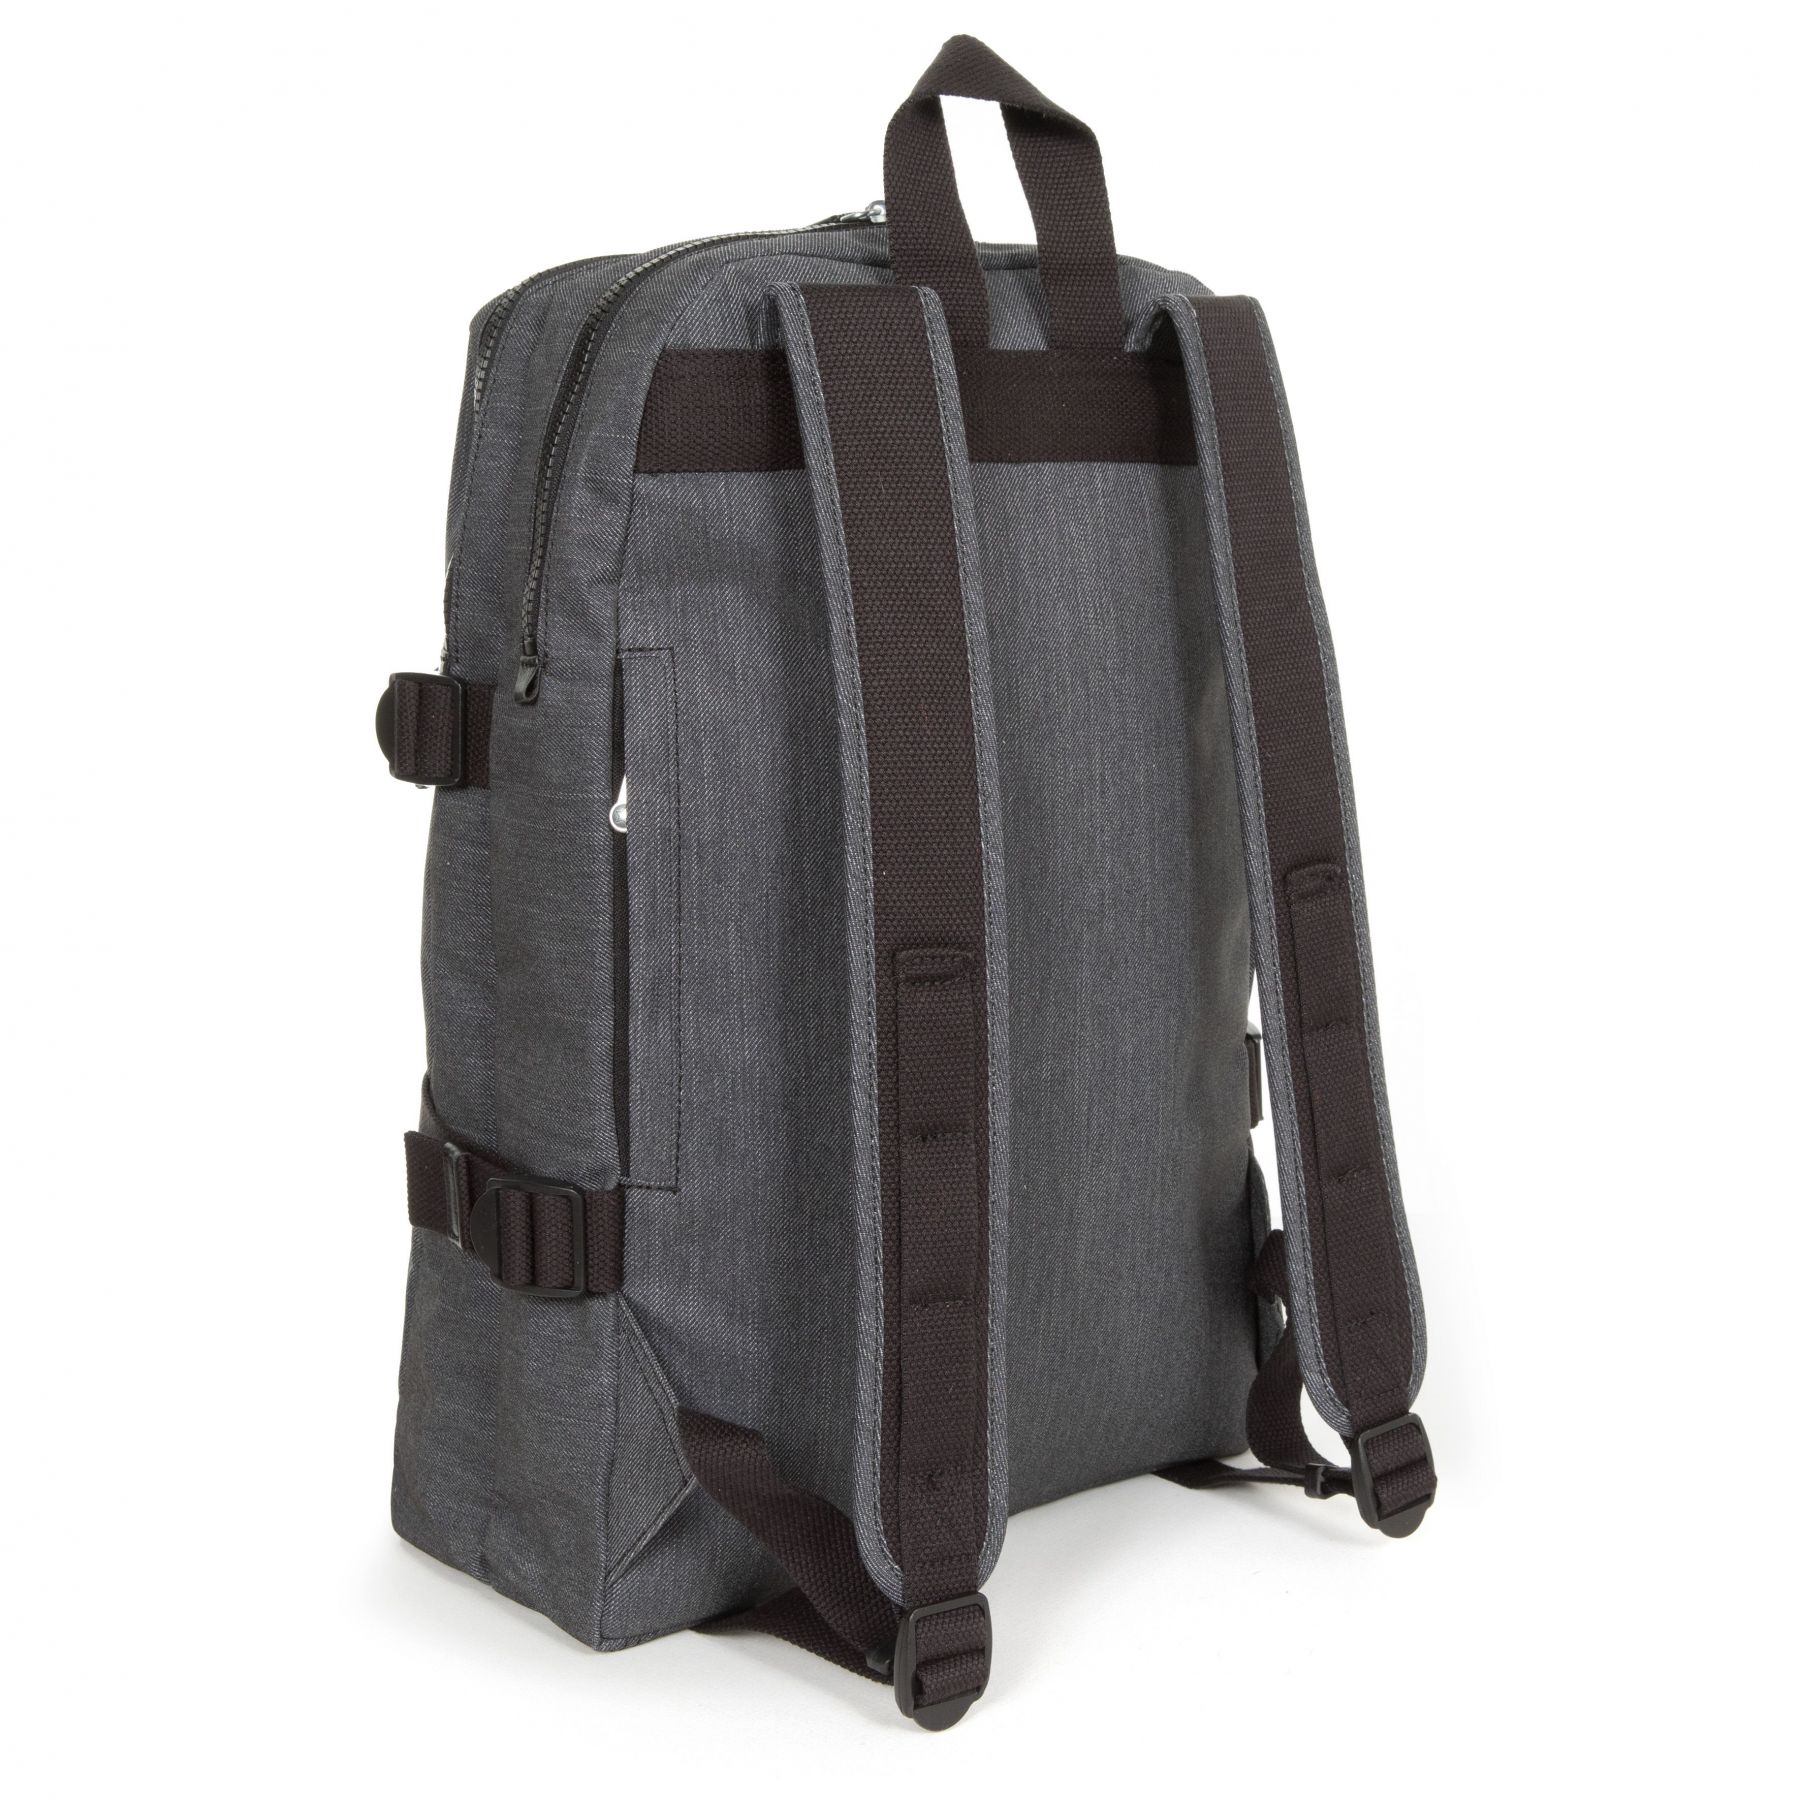 TAMIKO BACKPACKS by Kipling